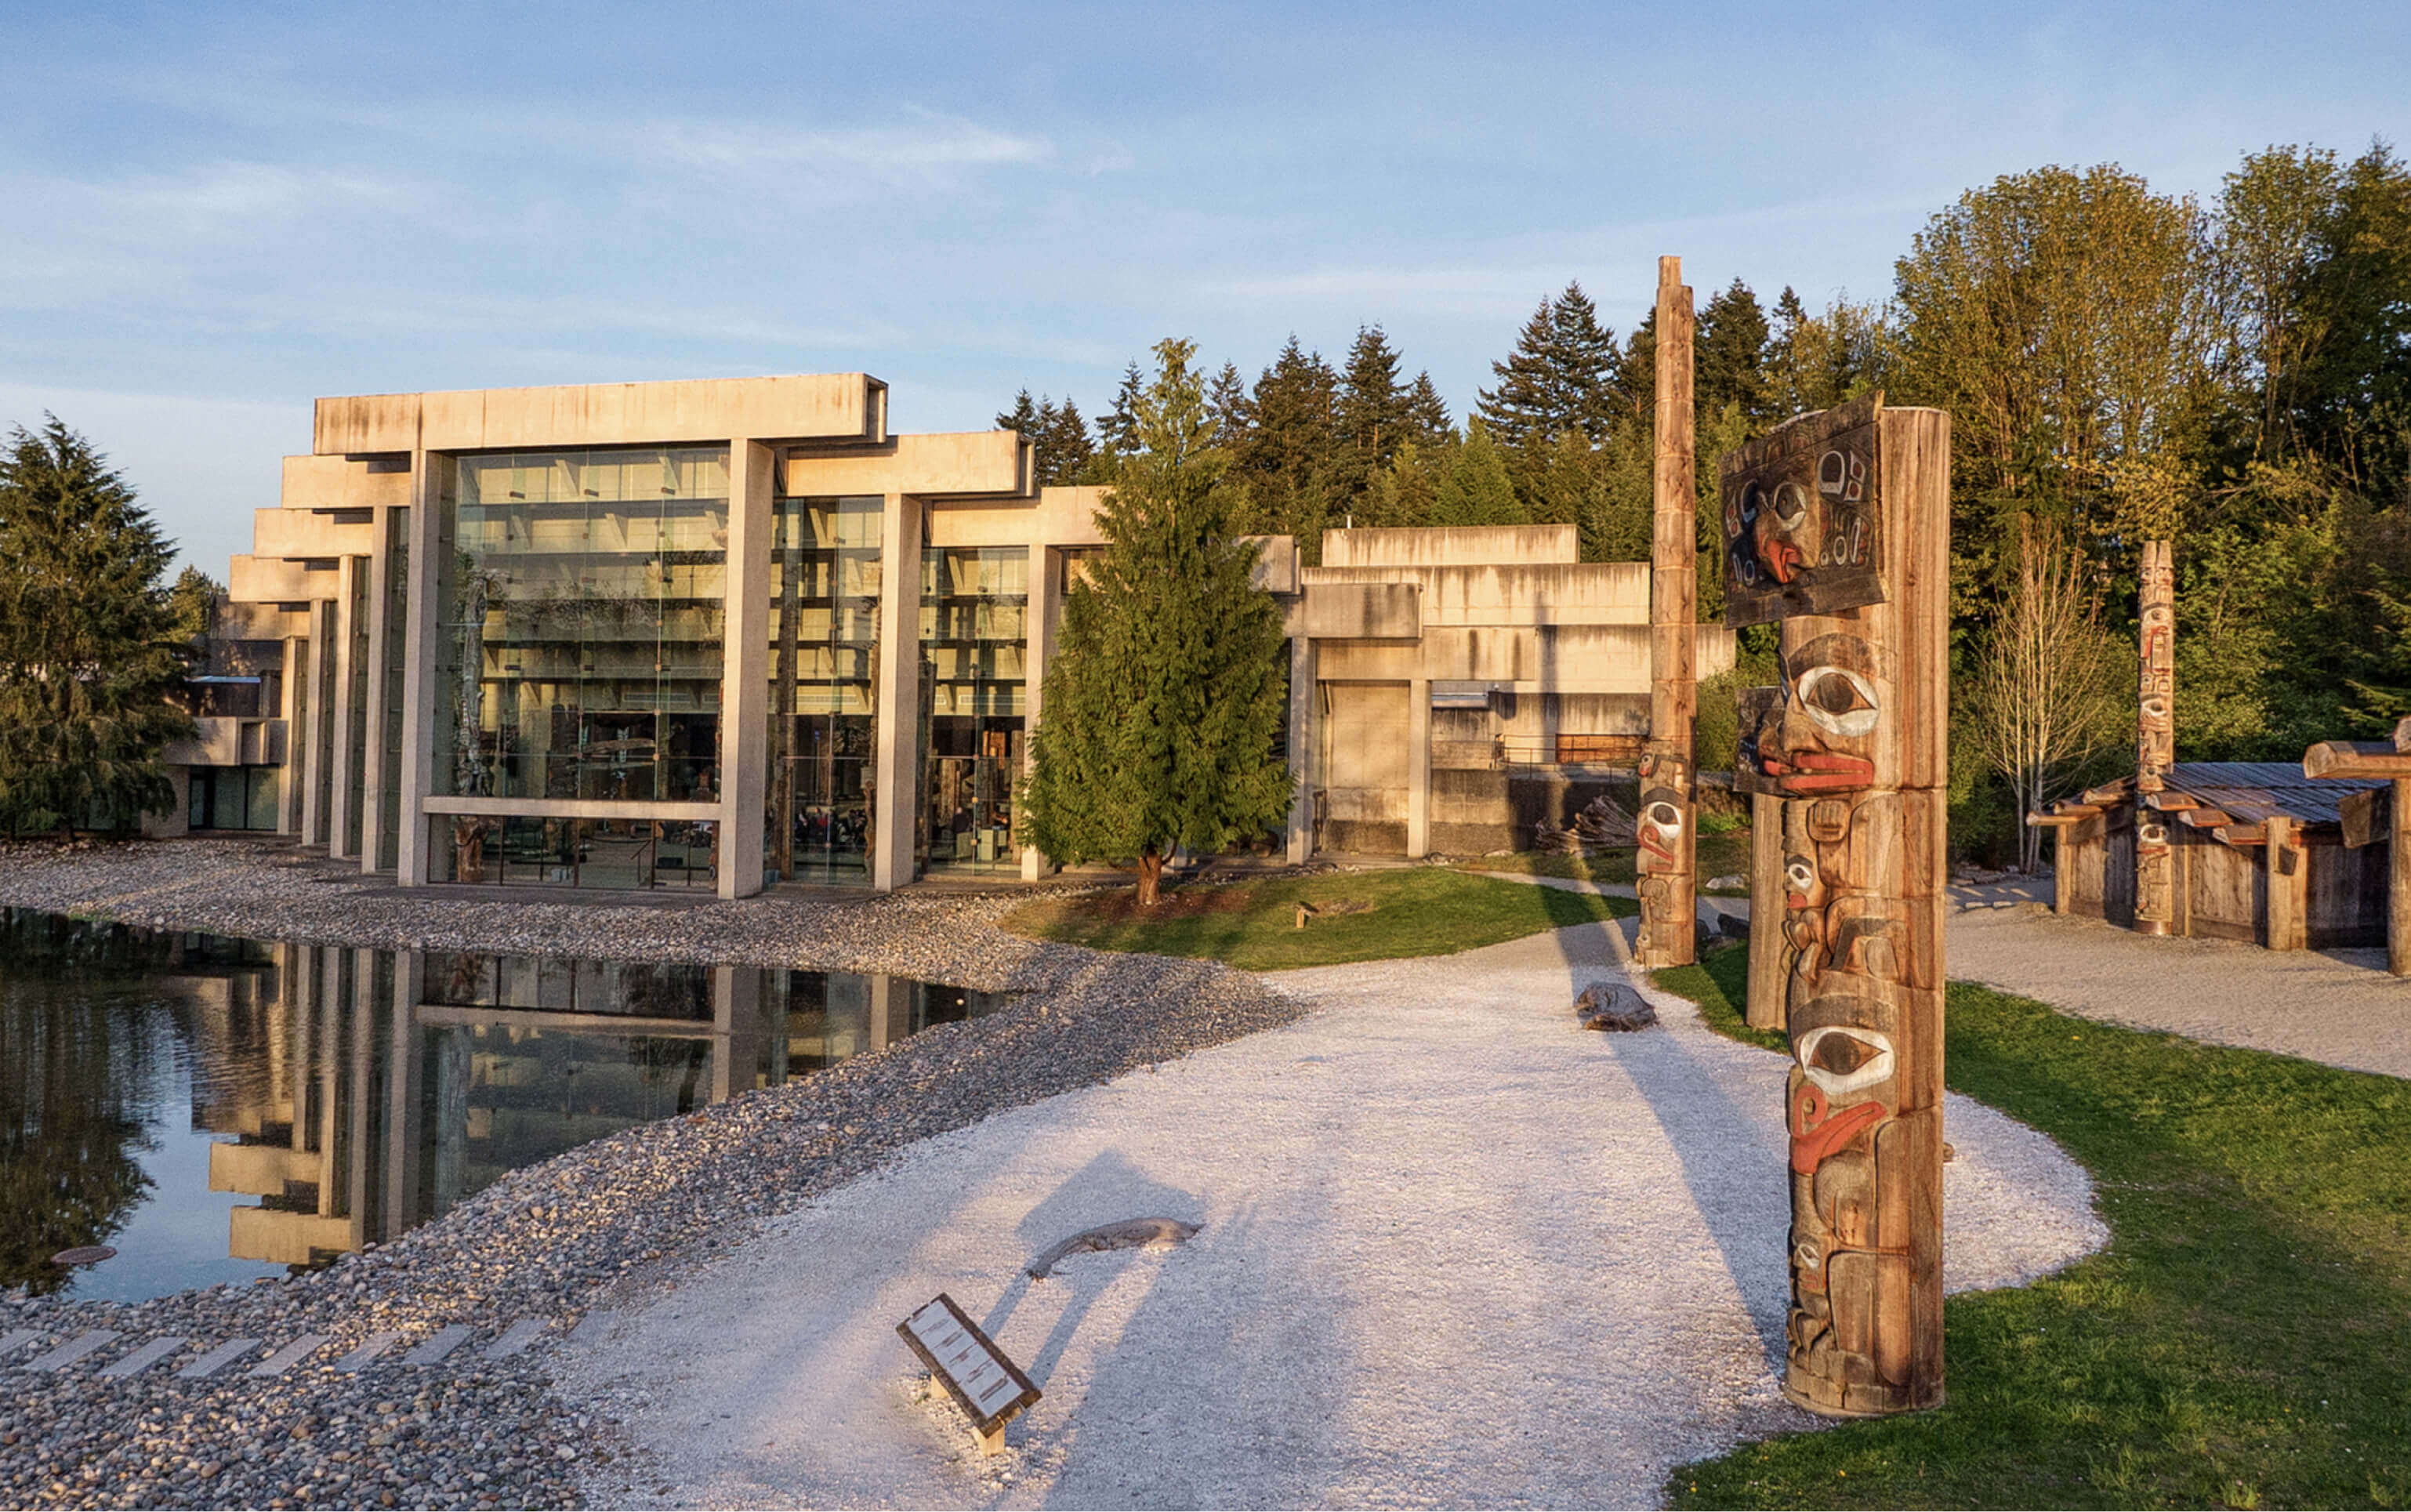 The Museum of Anthropology and totem poles at UBC Vancouver